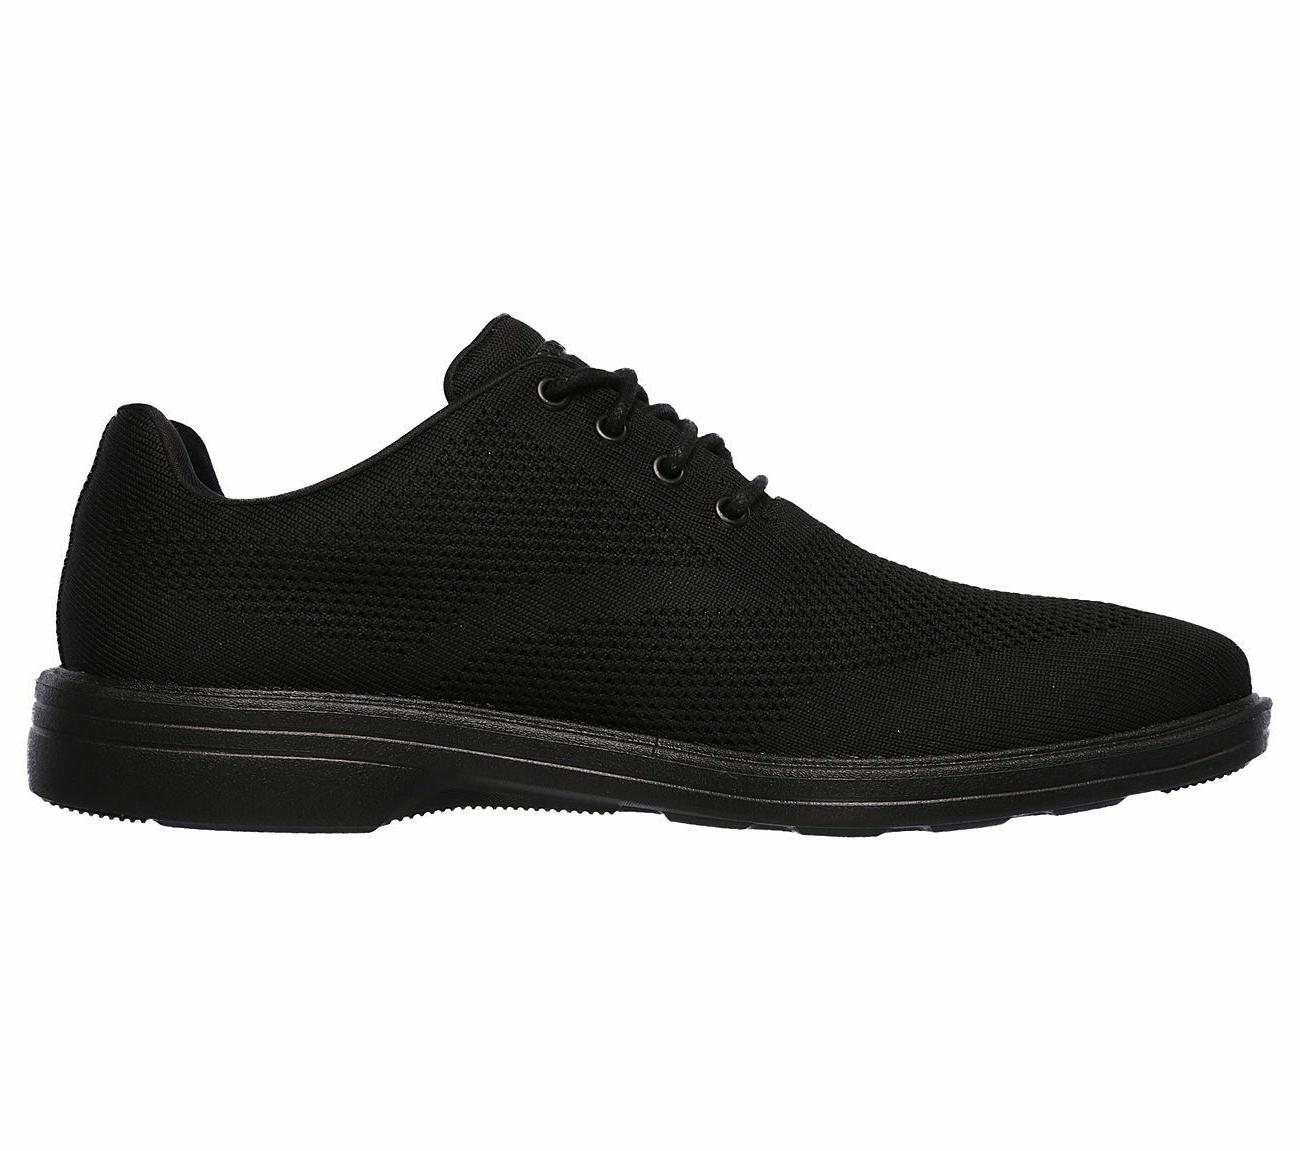 65293 Black Skechers shoes Men's Memory Comfort Dress Casual